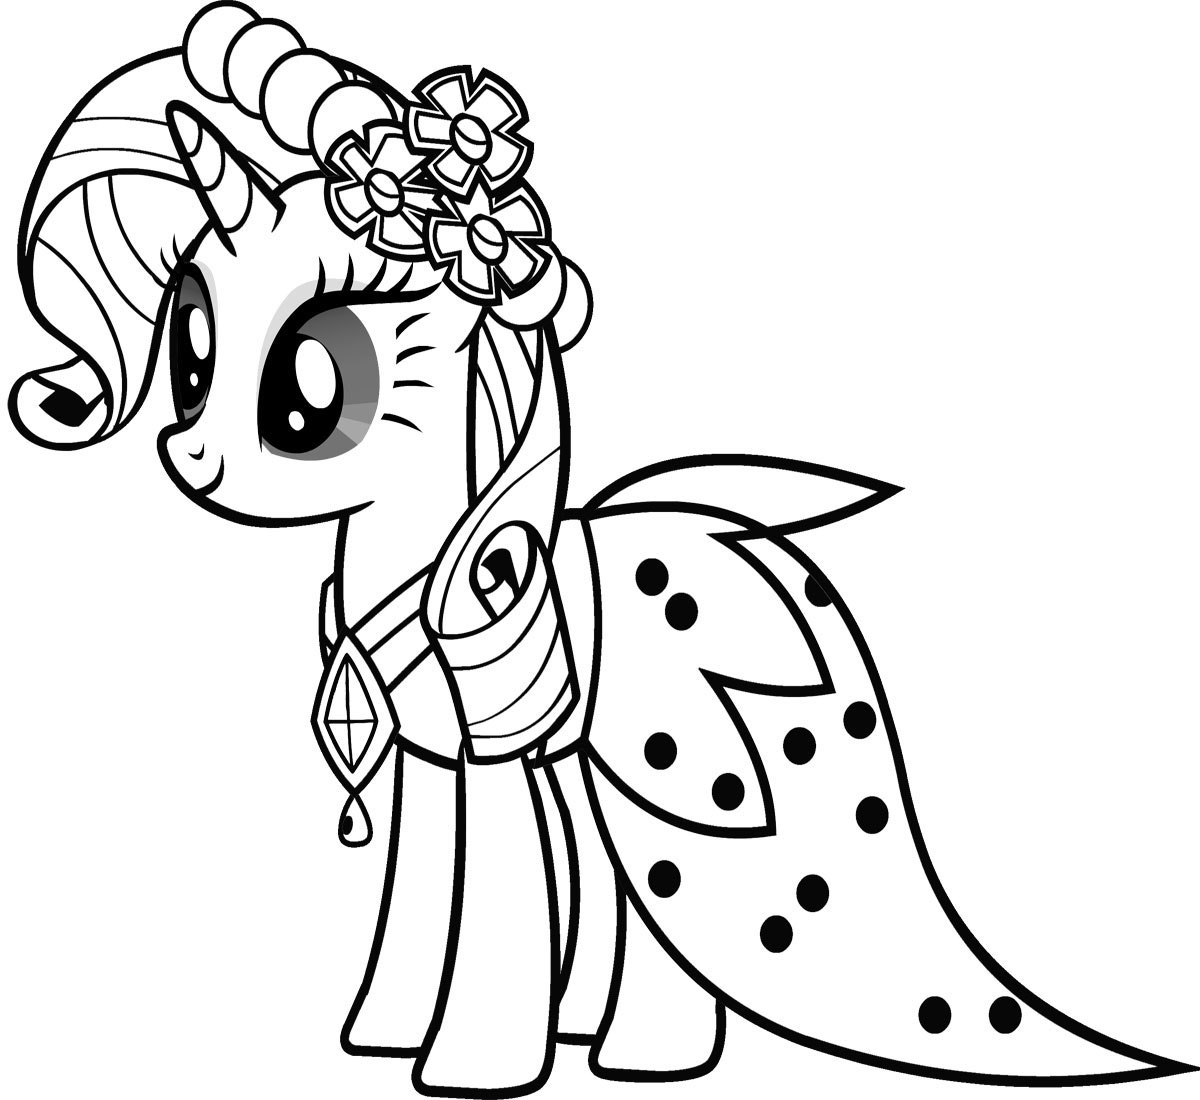 Print Free MLP Coloring Pages